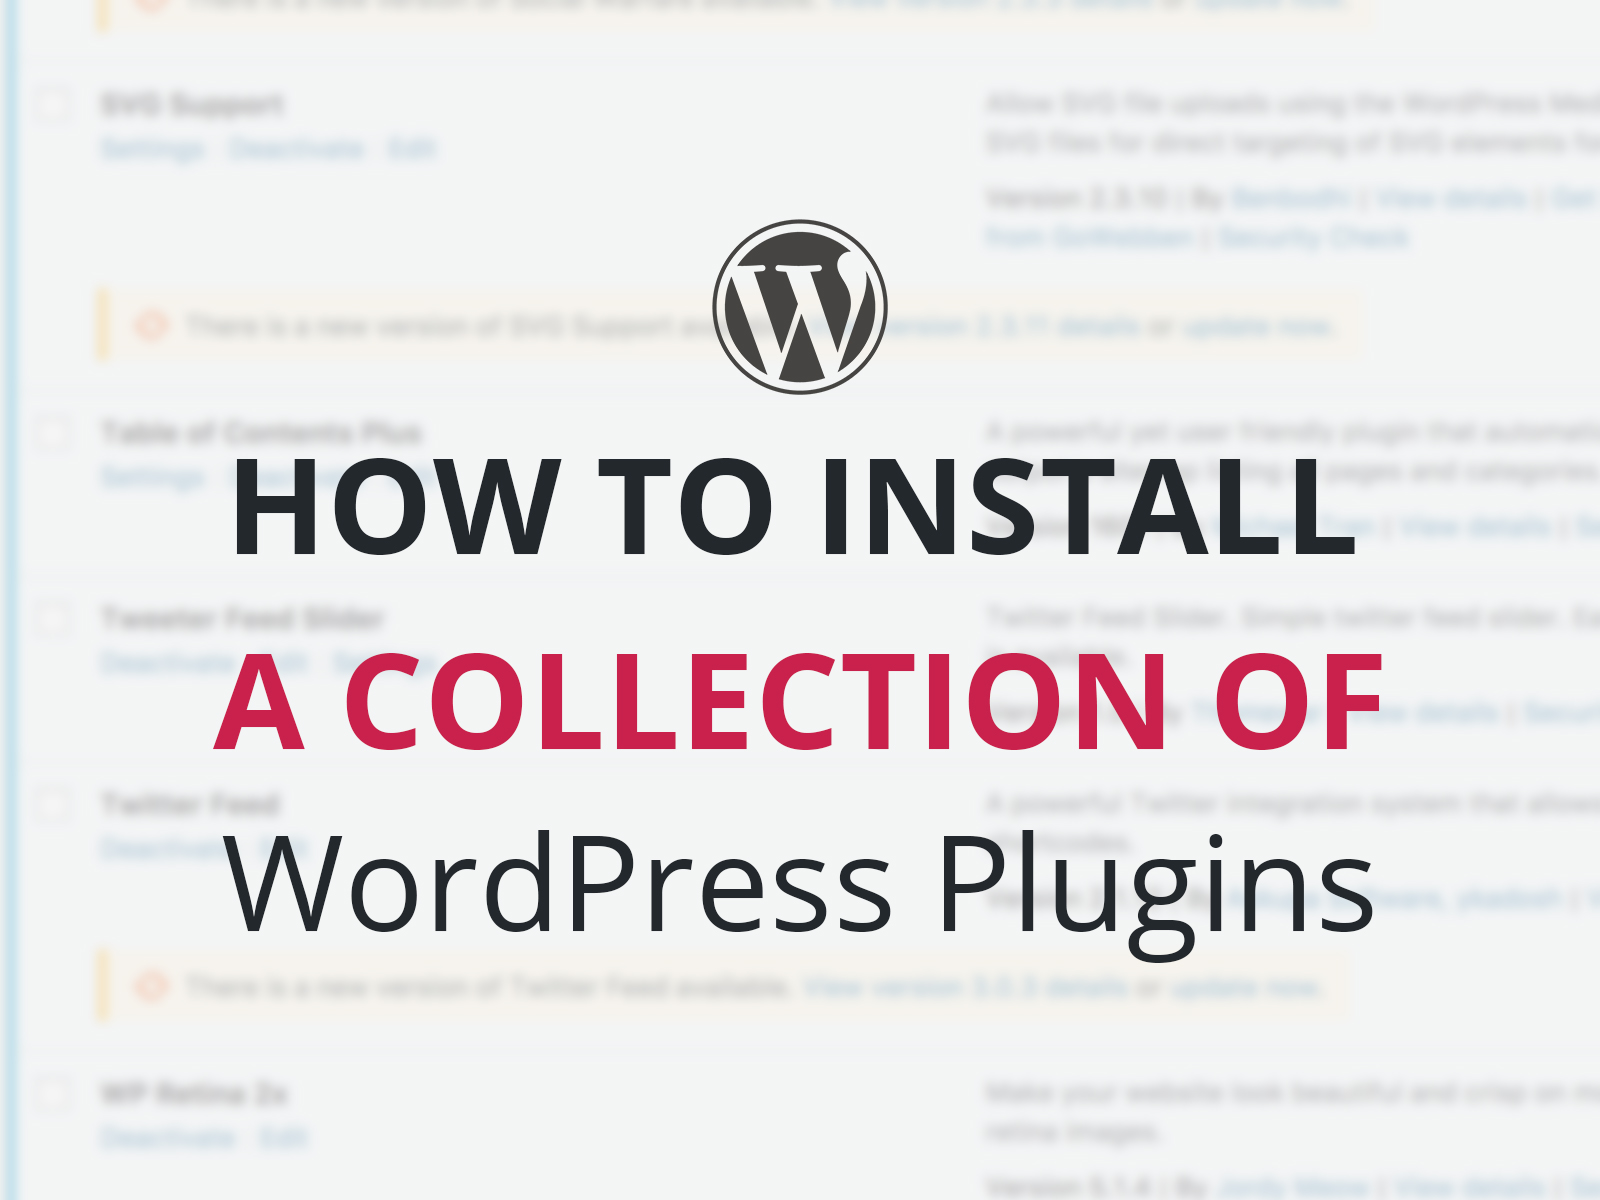 How to Install a Collection of WordPress Plugins